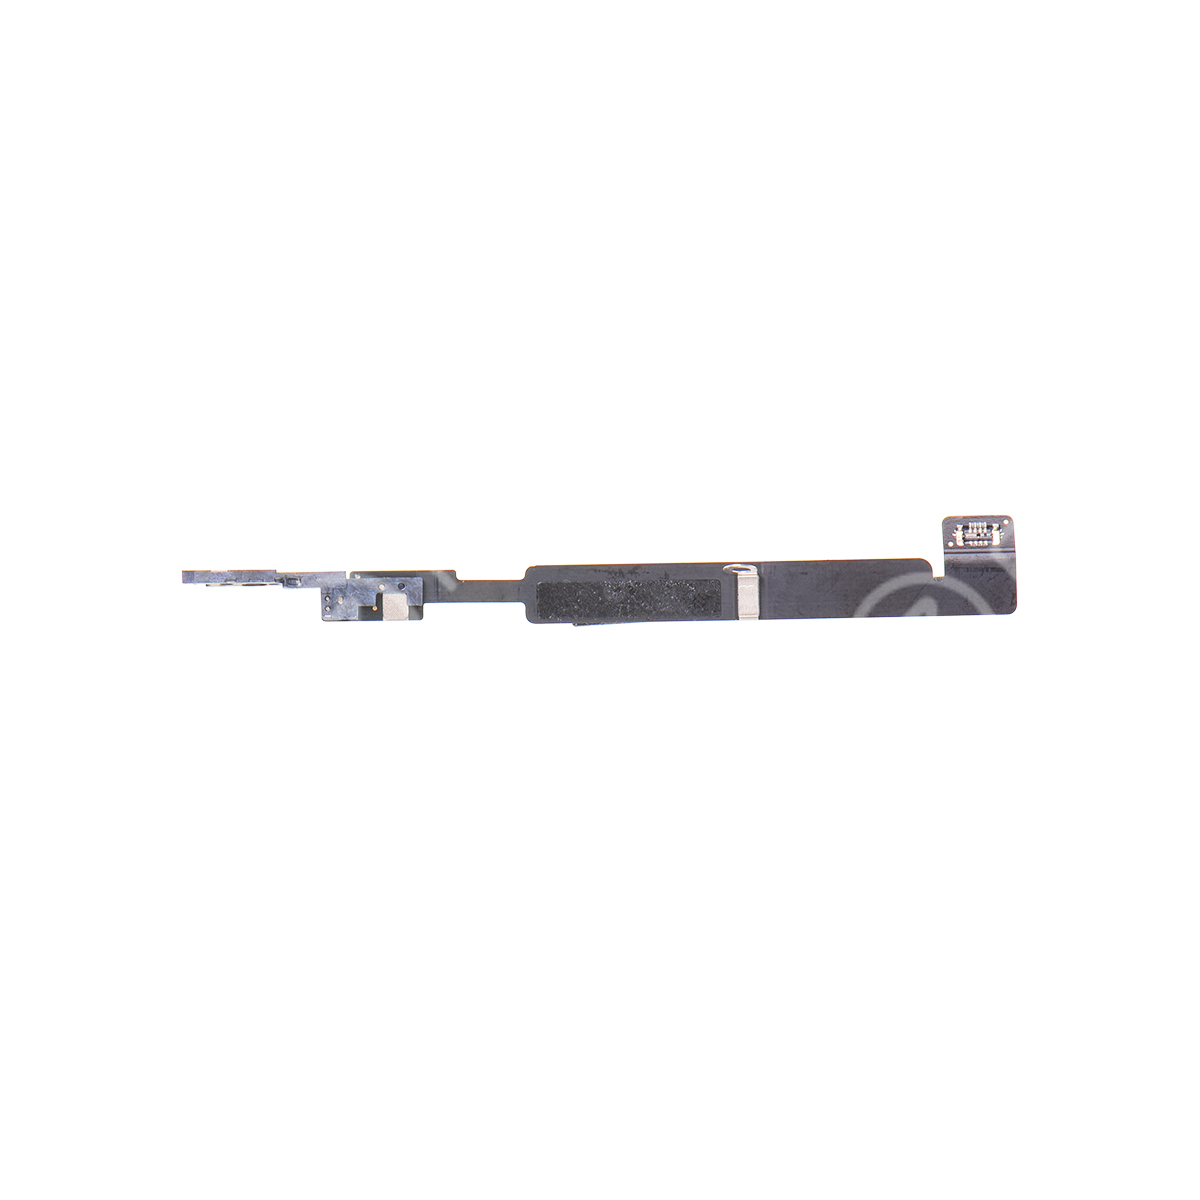 For Apple iPhone 12 MINI Bluetooth Antenna Replacement